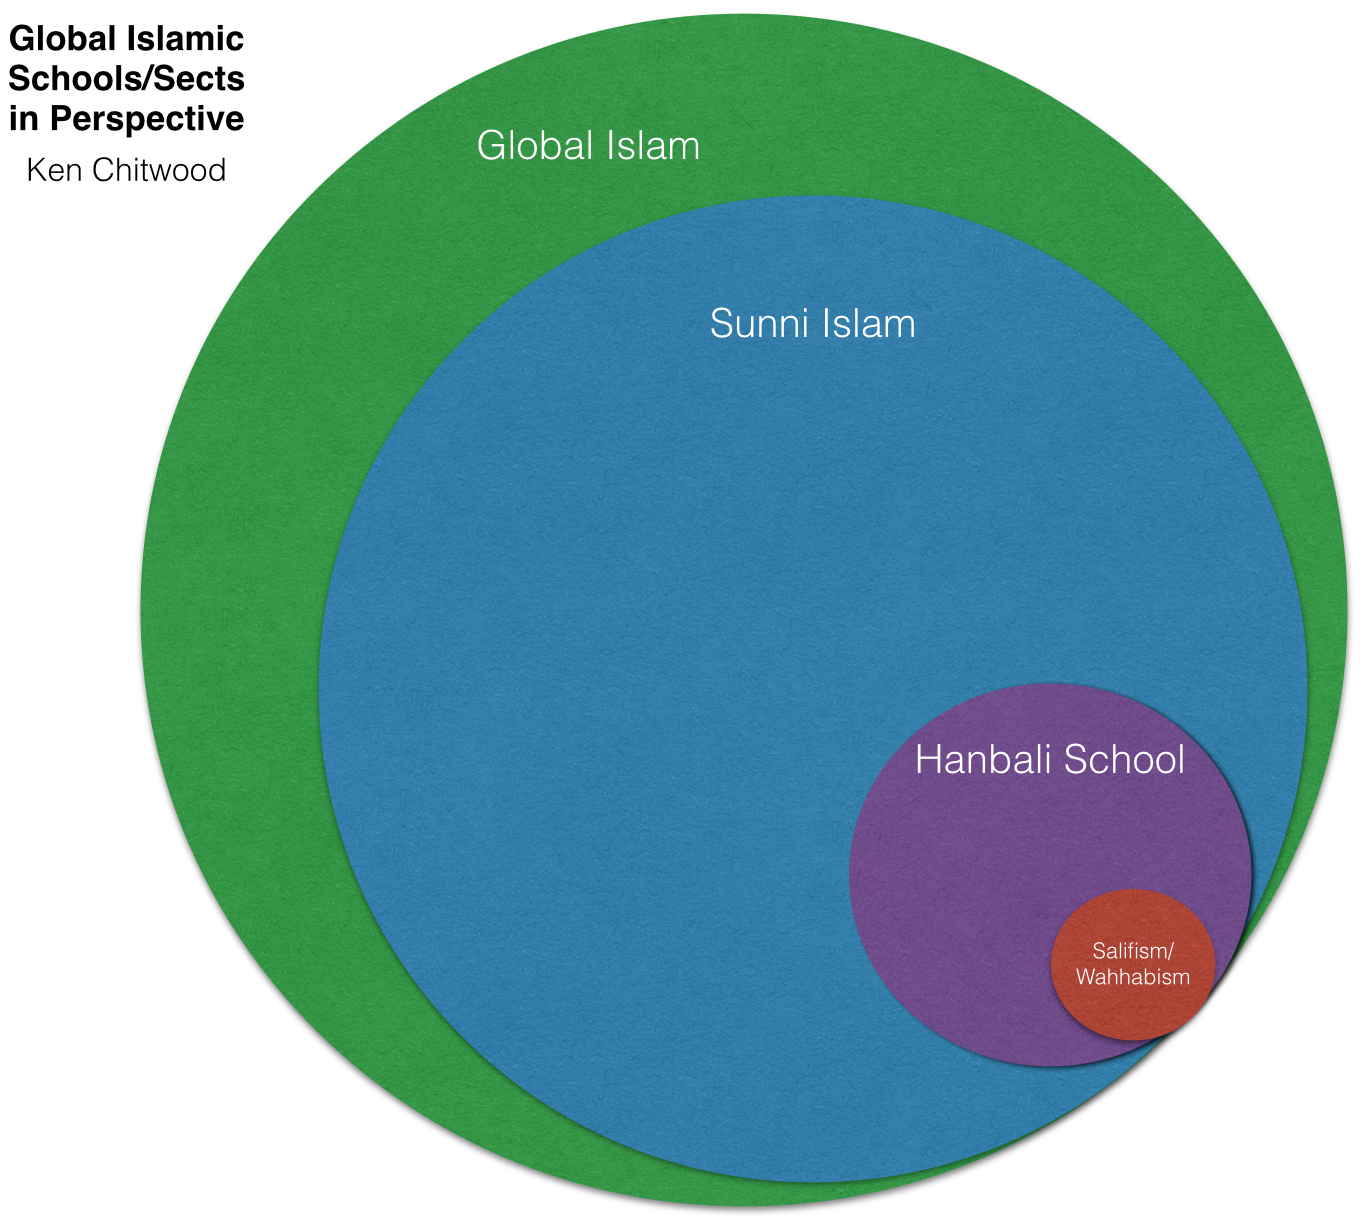 A perspectival graph of global Islam's schools and sects.